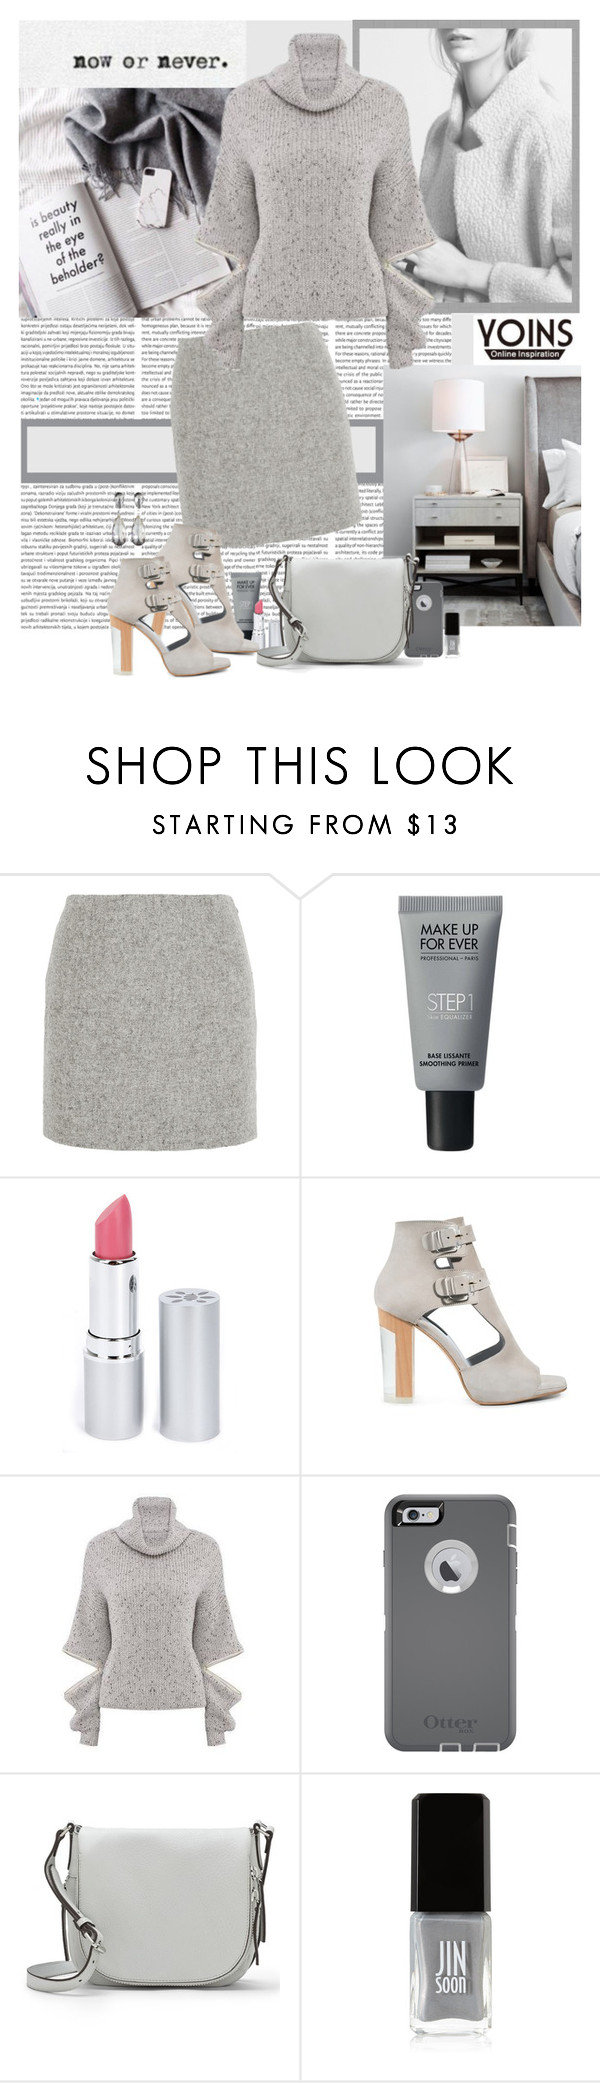 """""""Subtlety"""" by polybaby ❤ liked on Polyvore featuring Atto, MAKE UP FOR EVER, HoneyBee Gardens, Miista, OtterBox, Vince Camuto, JINsoon, Kenneth Jay Lane and yoinscollection"""